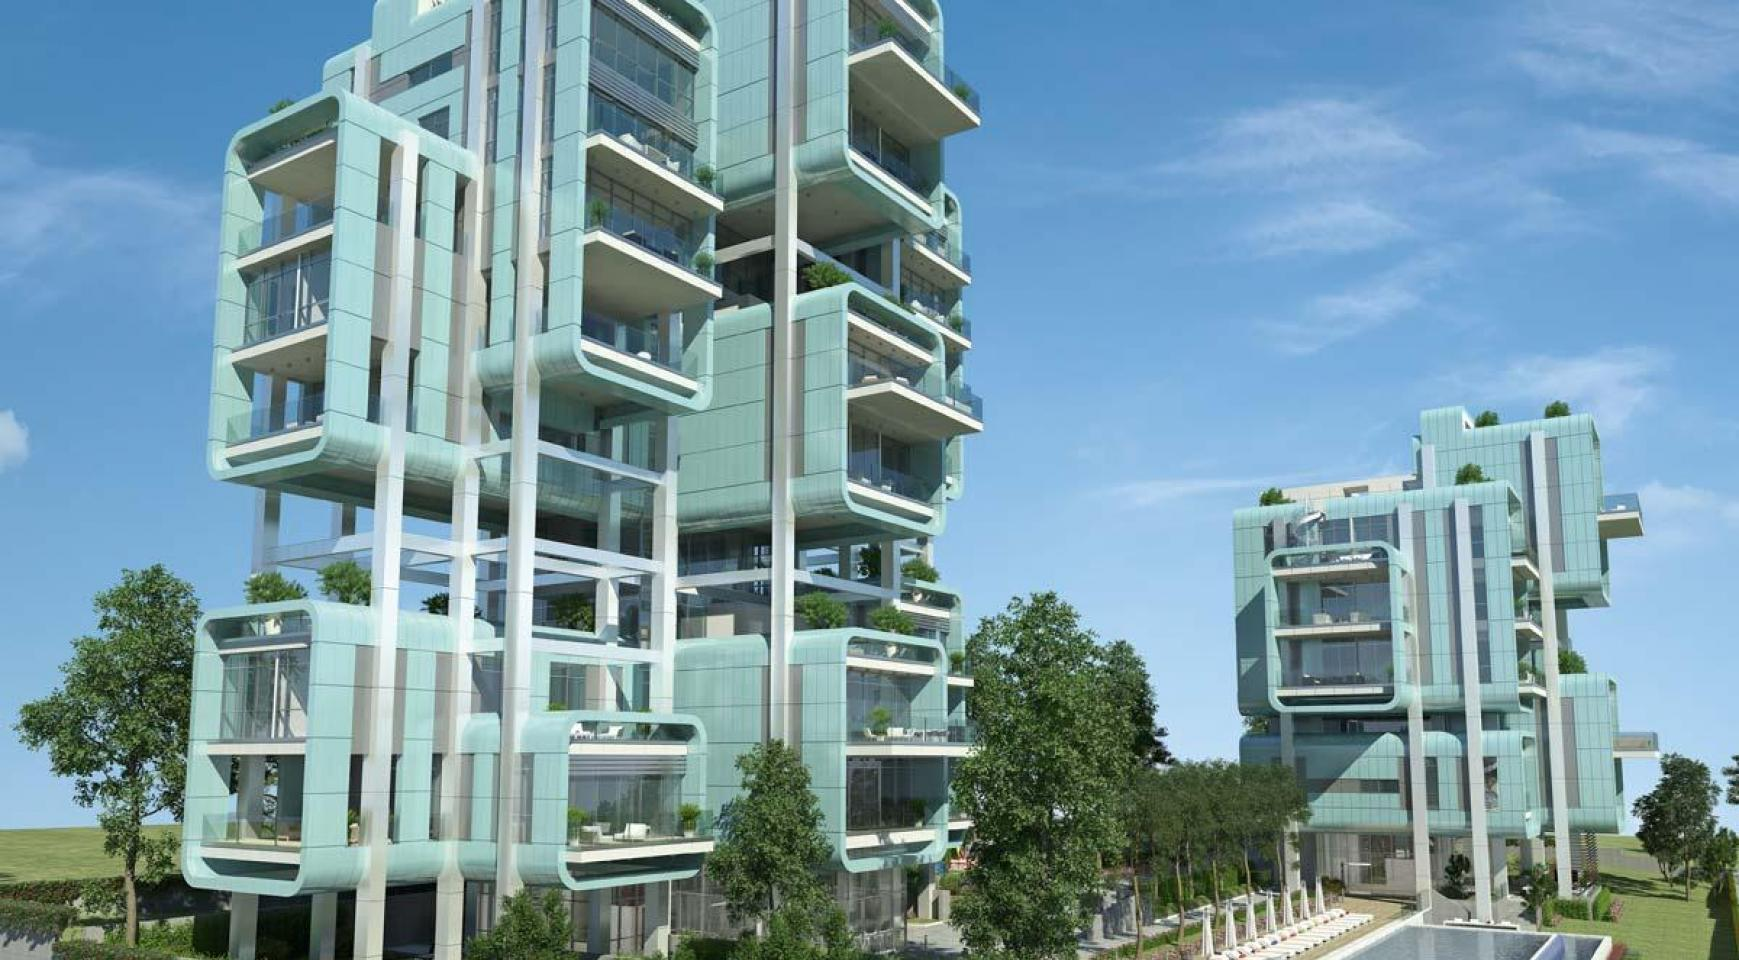 3 Bedroom Apartment with Roof Garden within a New Complex - 25